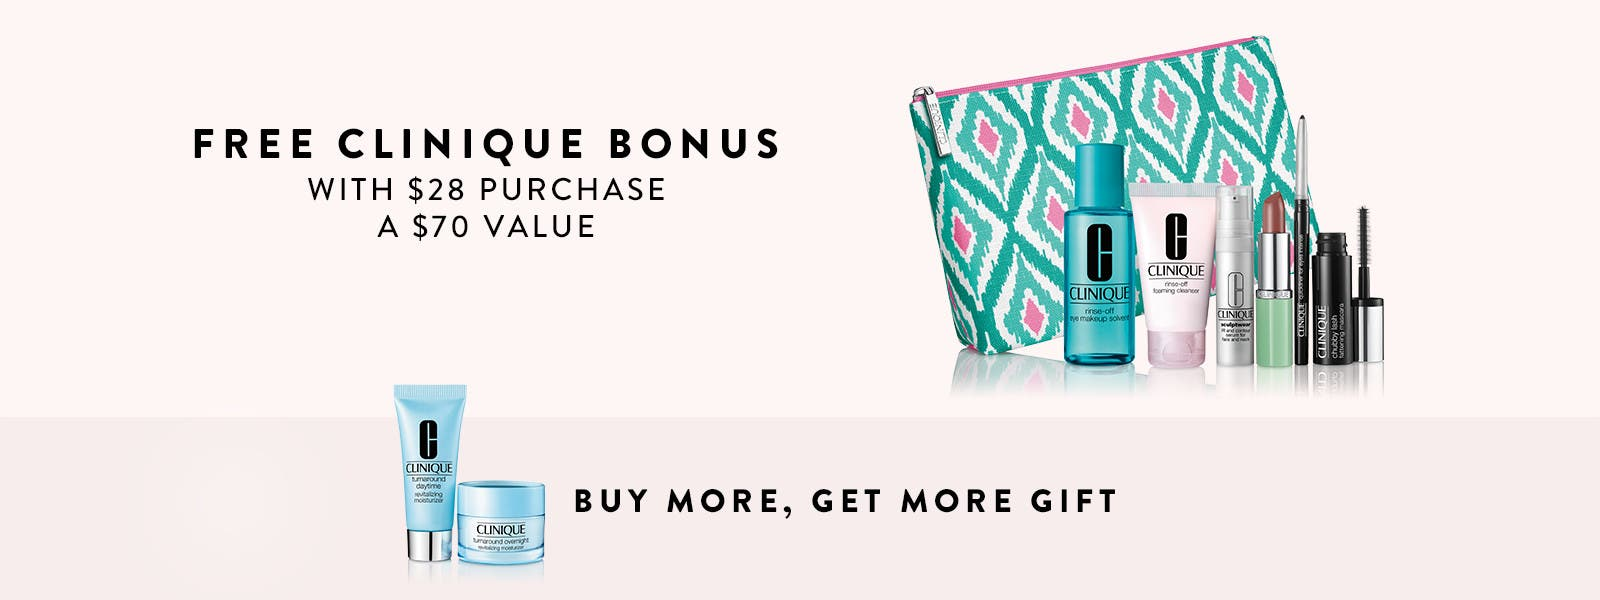 Free Clinique bonus with $28 purchase. A $70 value. Buy more, get more gift.